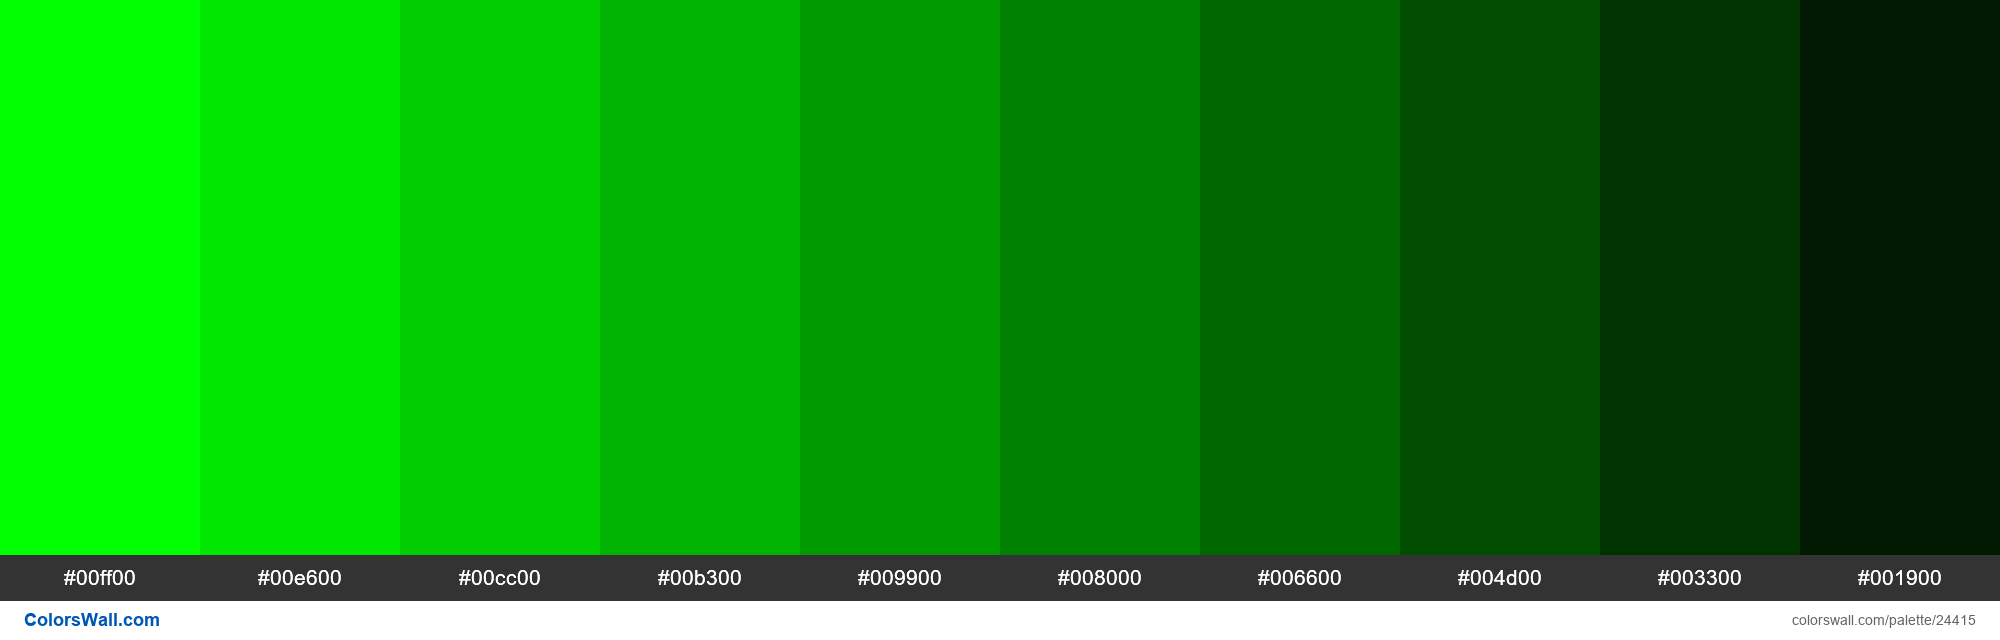 Shades of Lime 00FF00 hex color 00ff00, 00e600, 00cc00